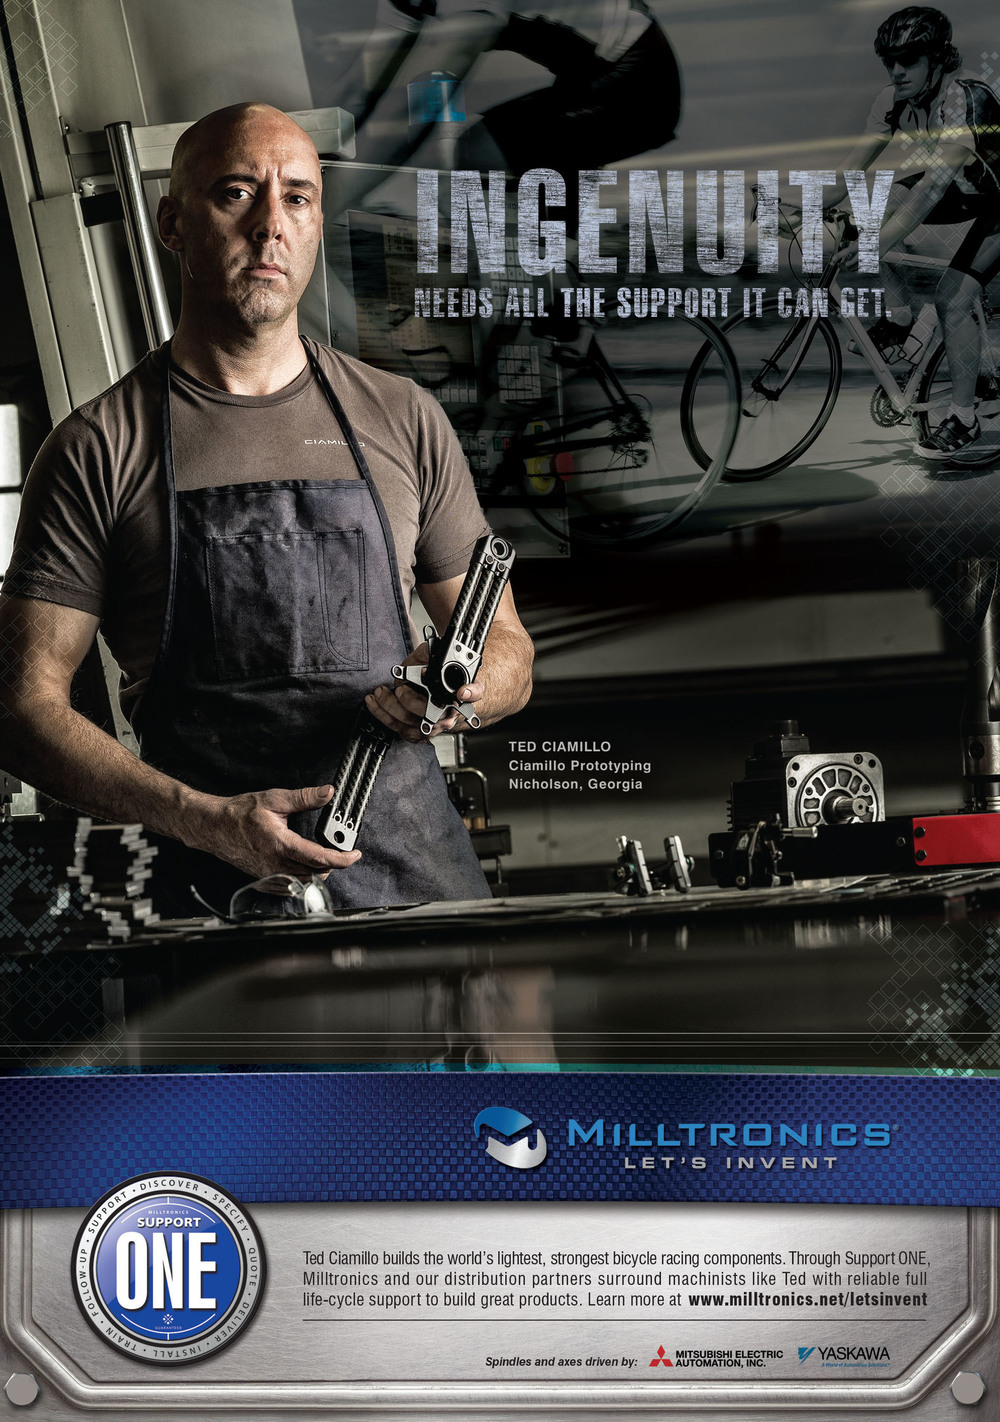 Milltronics CNC Machines